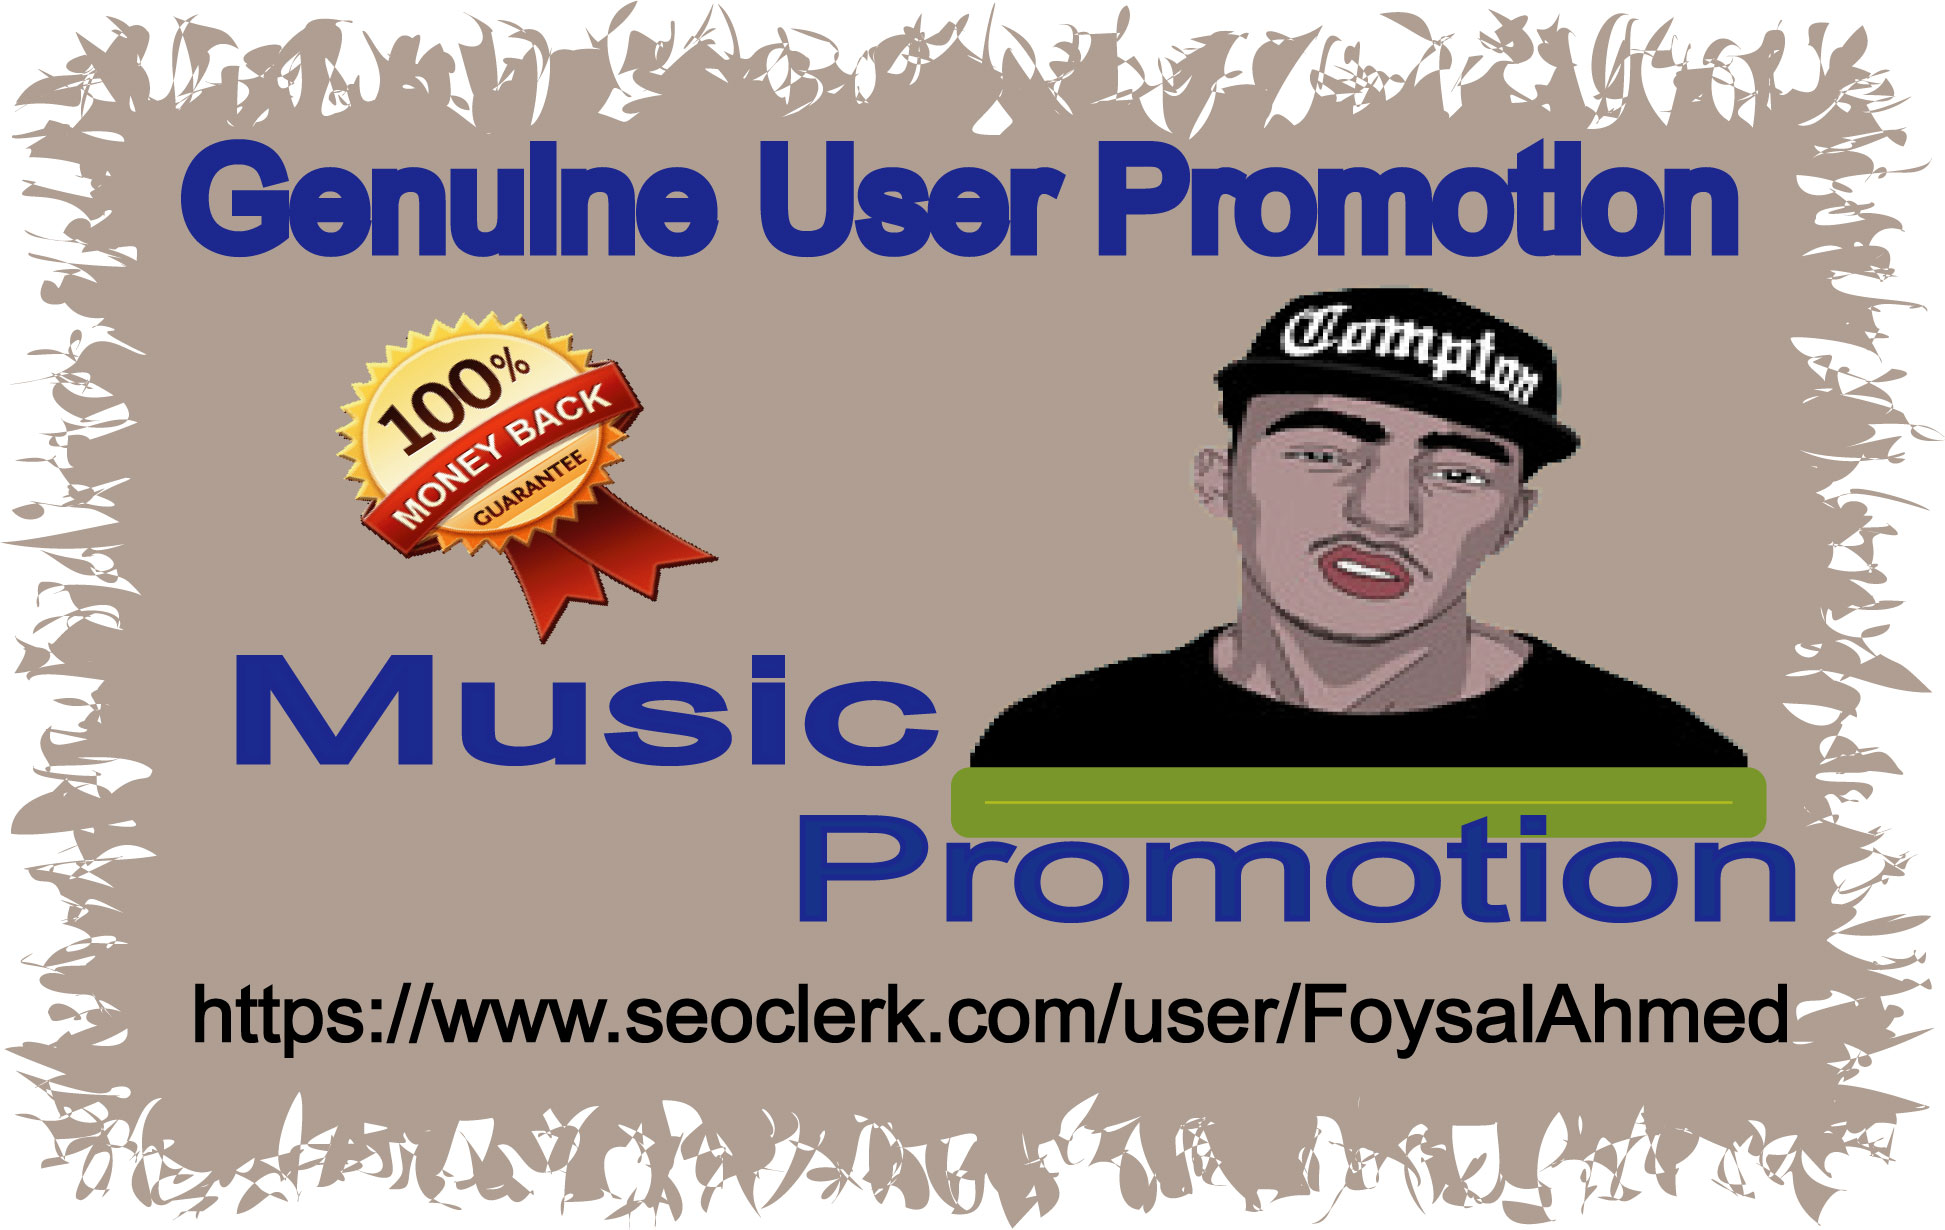 Music Promotion 5000 F0ll0wers Or 5000 Llke Or 5000 Re-post Delivery within 10 day